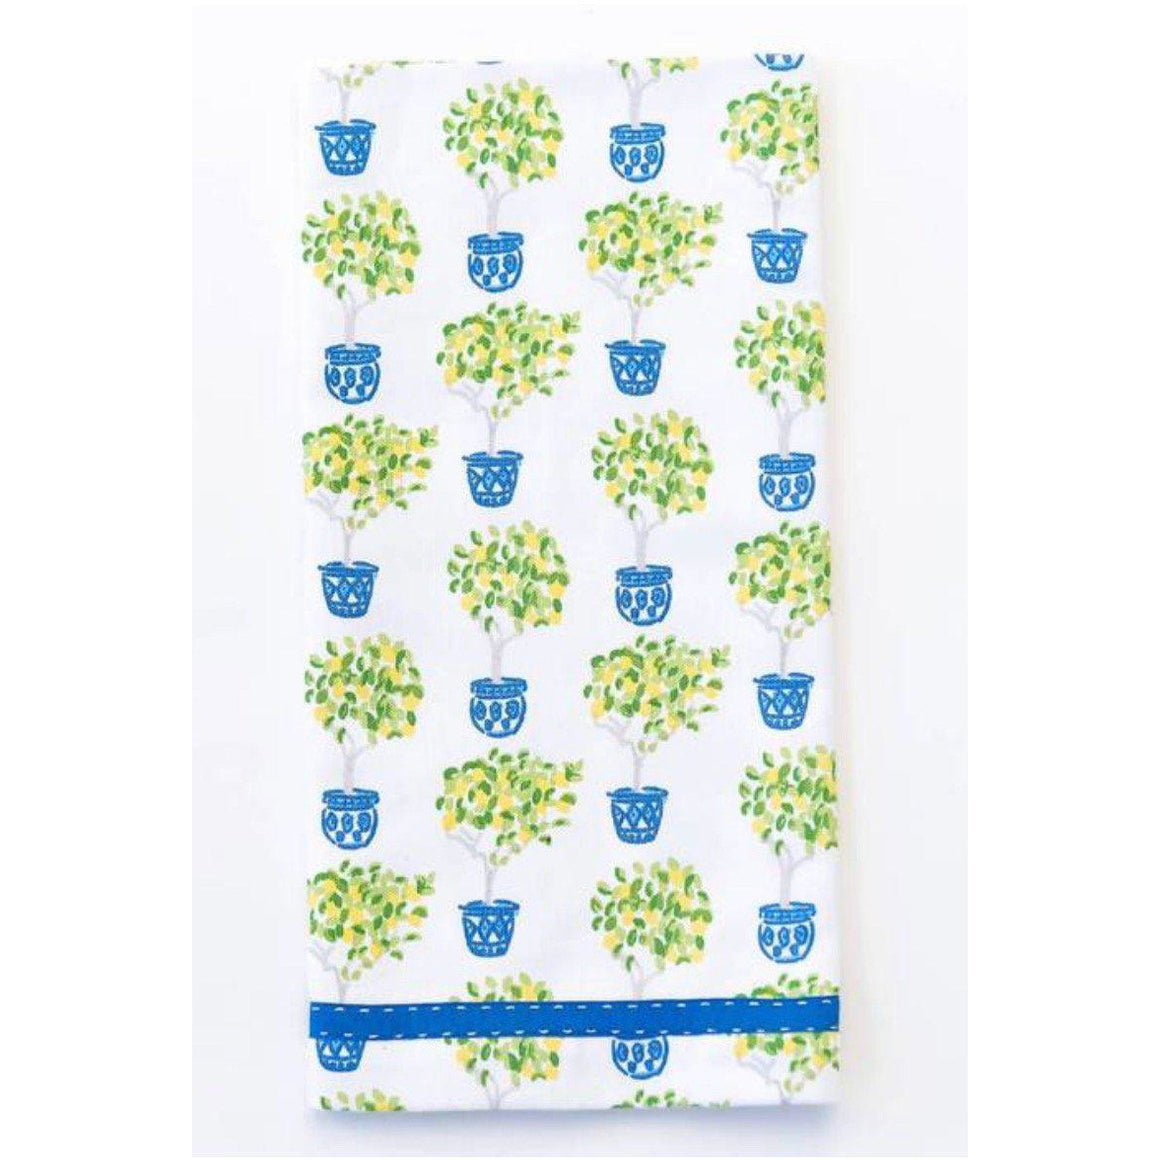 Lemon Topiary Towel with Monogram Set of 2 - The Preppy Bunny